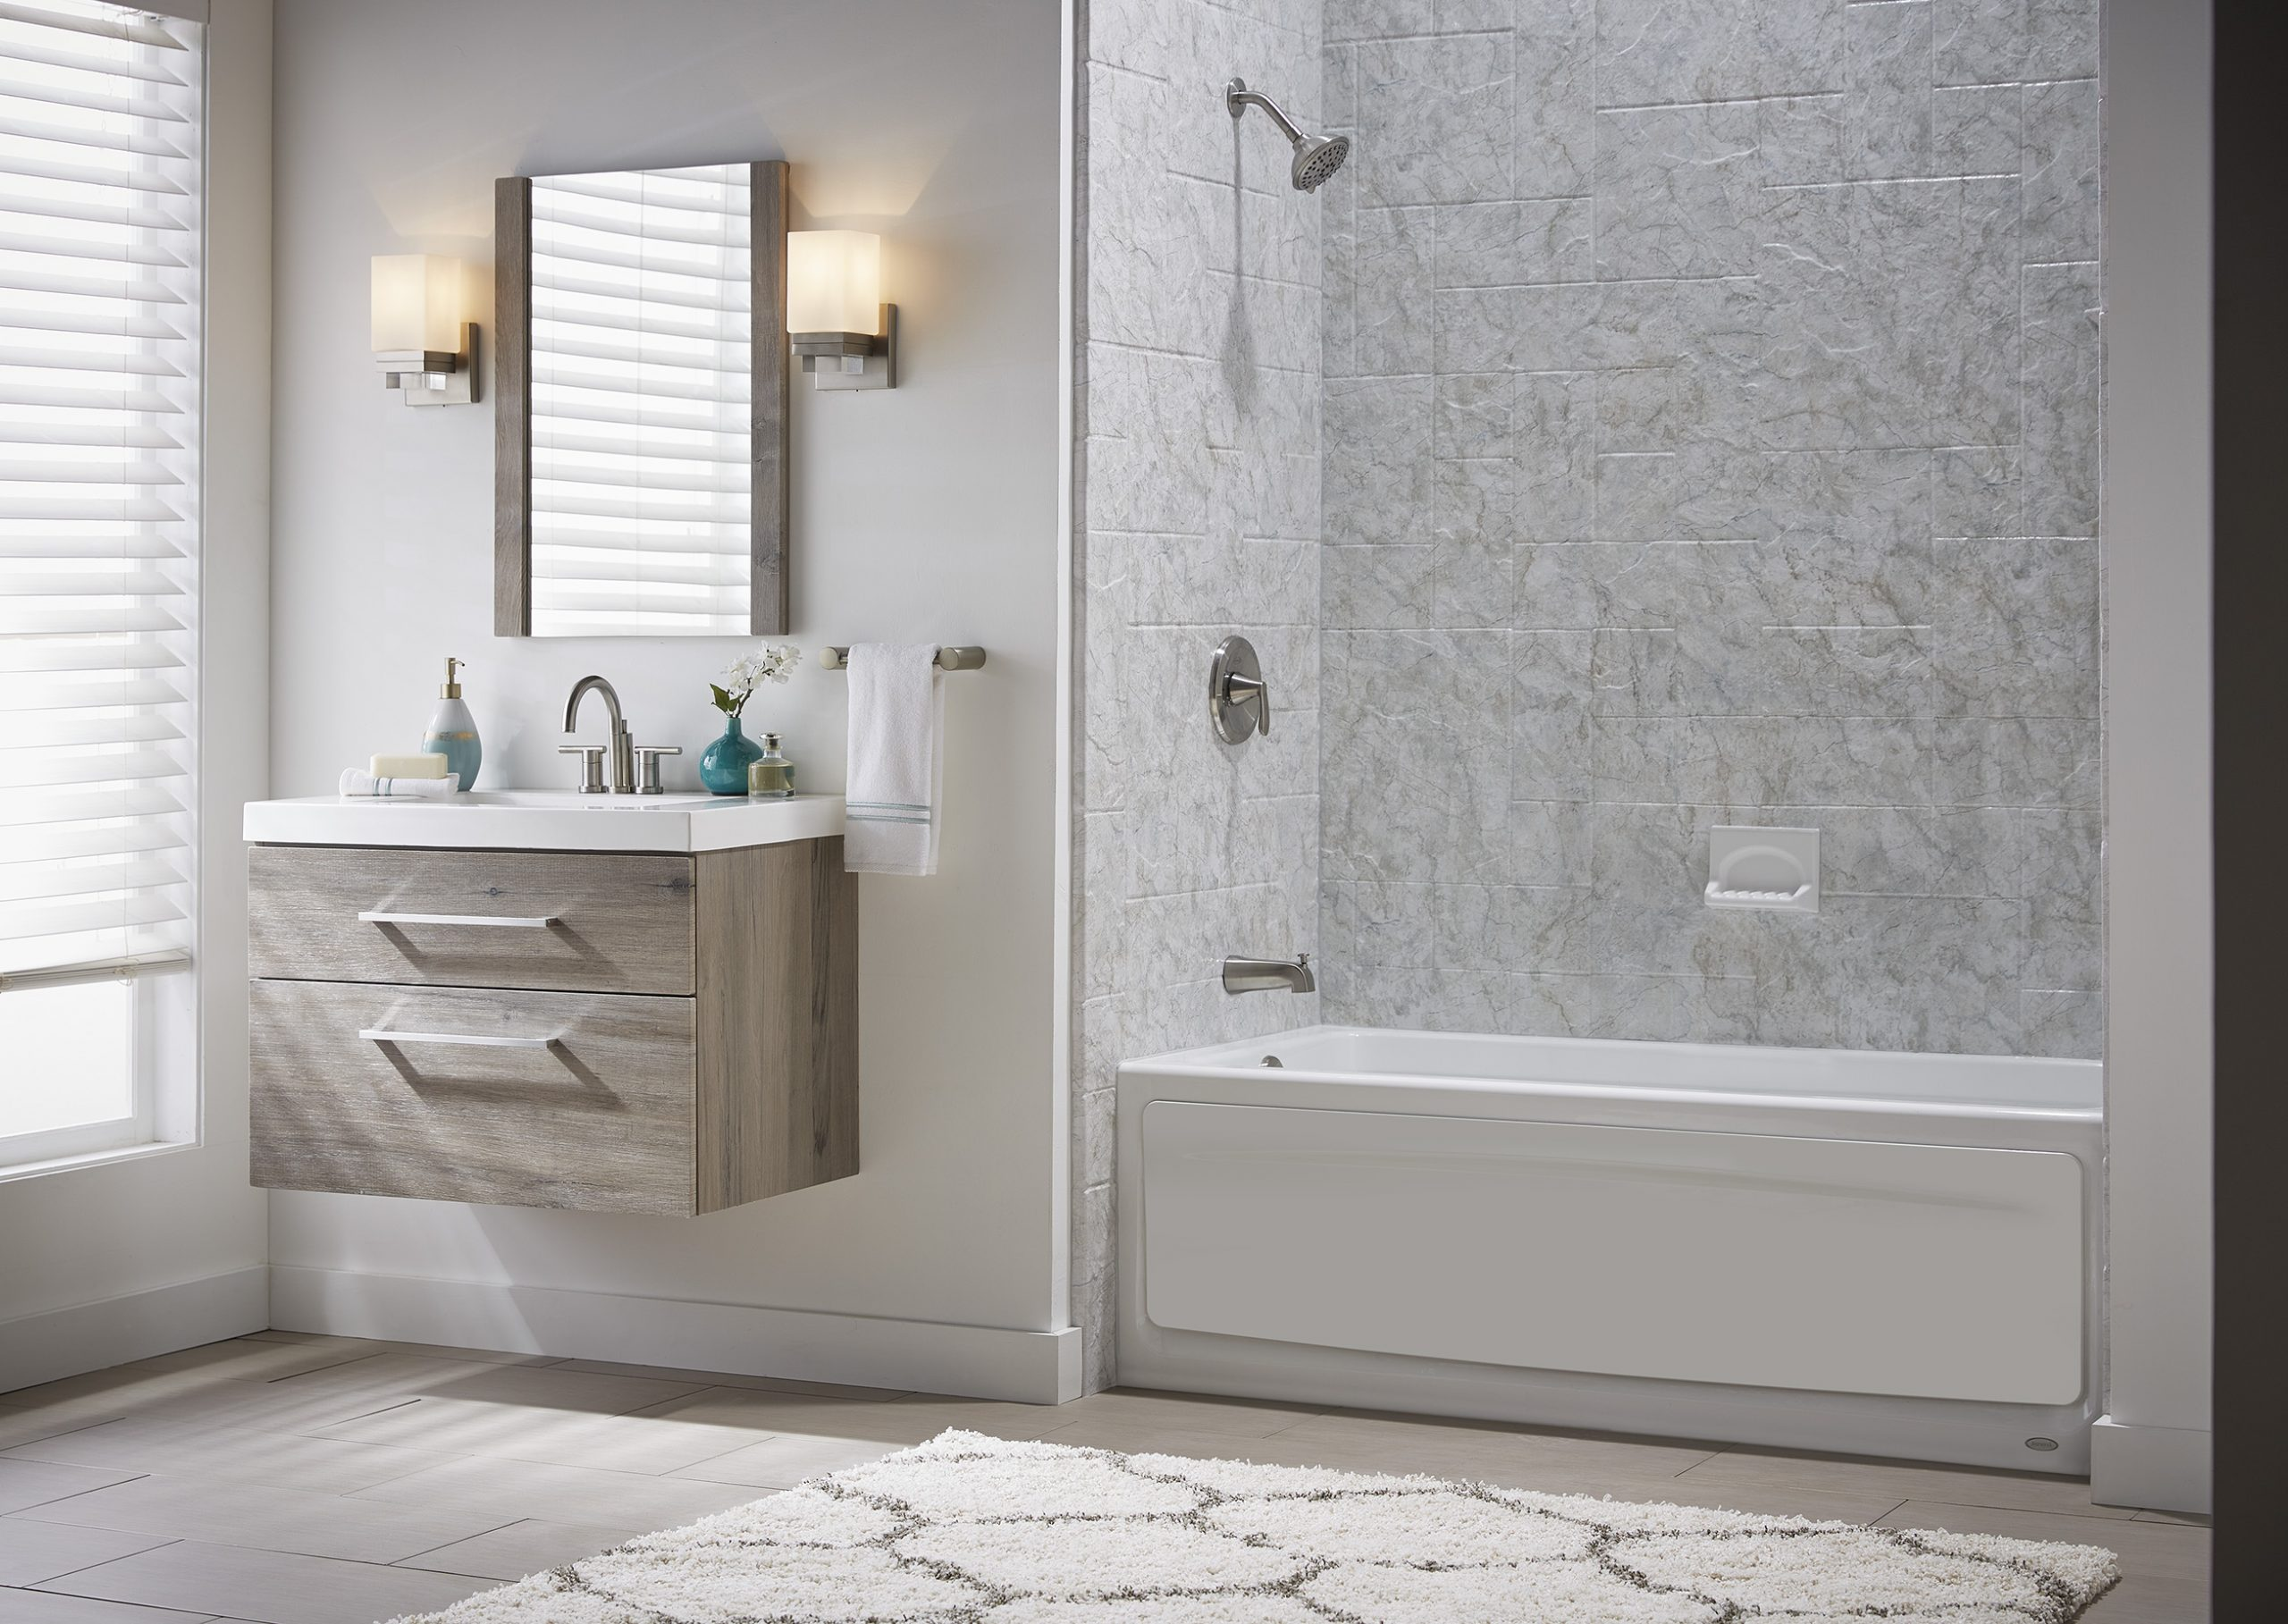 The Pros and Cons of a Bathtub Shower Combo